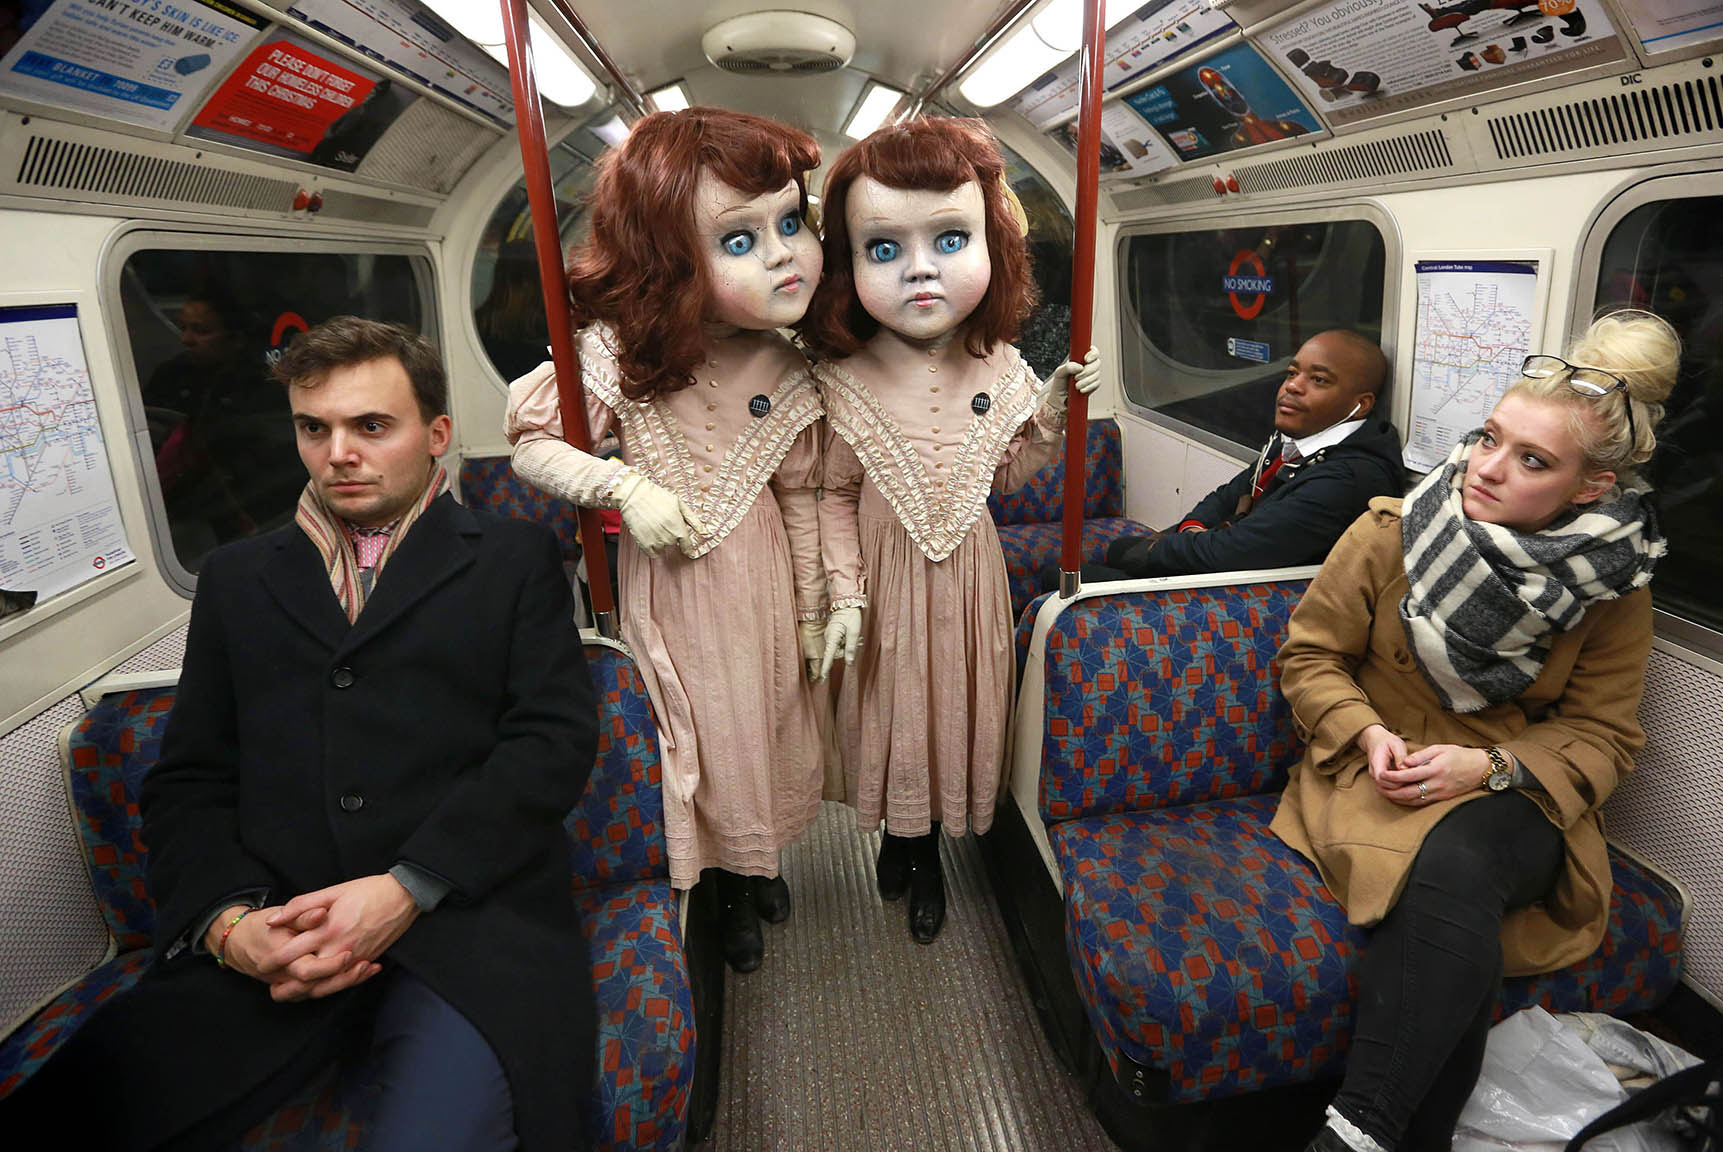 Two life-size Victorian style dolls